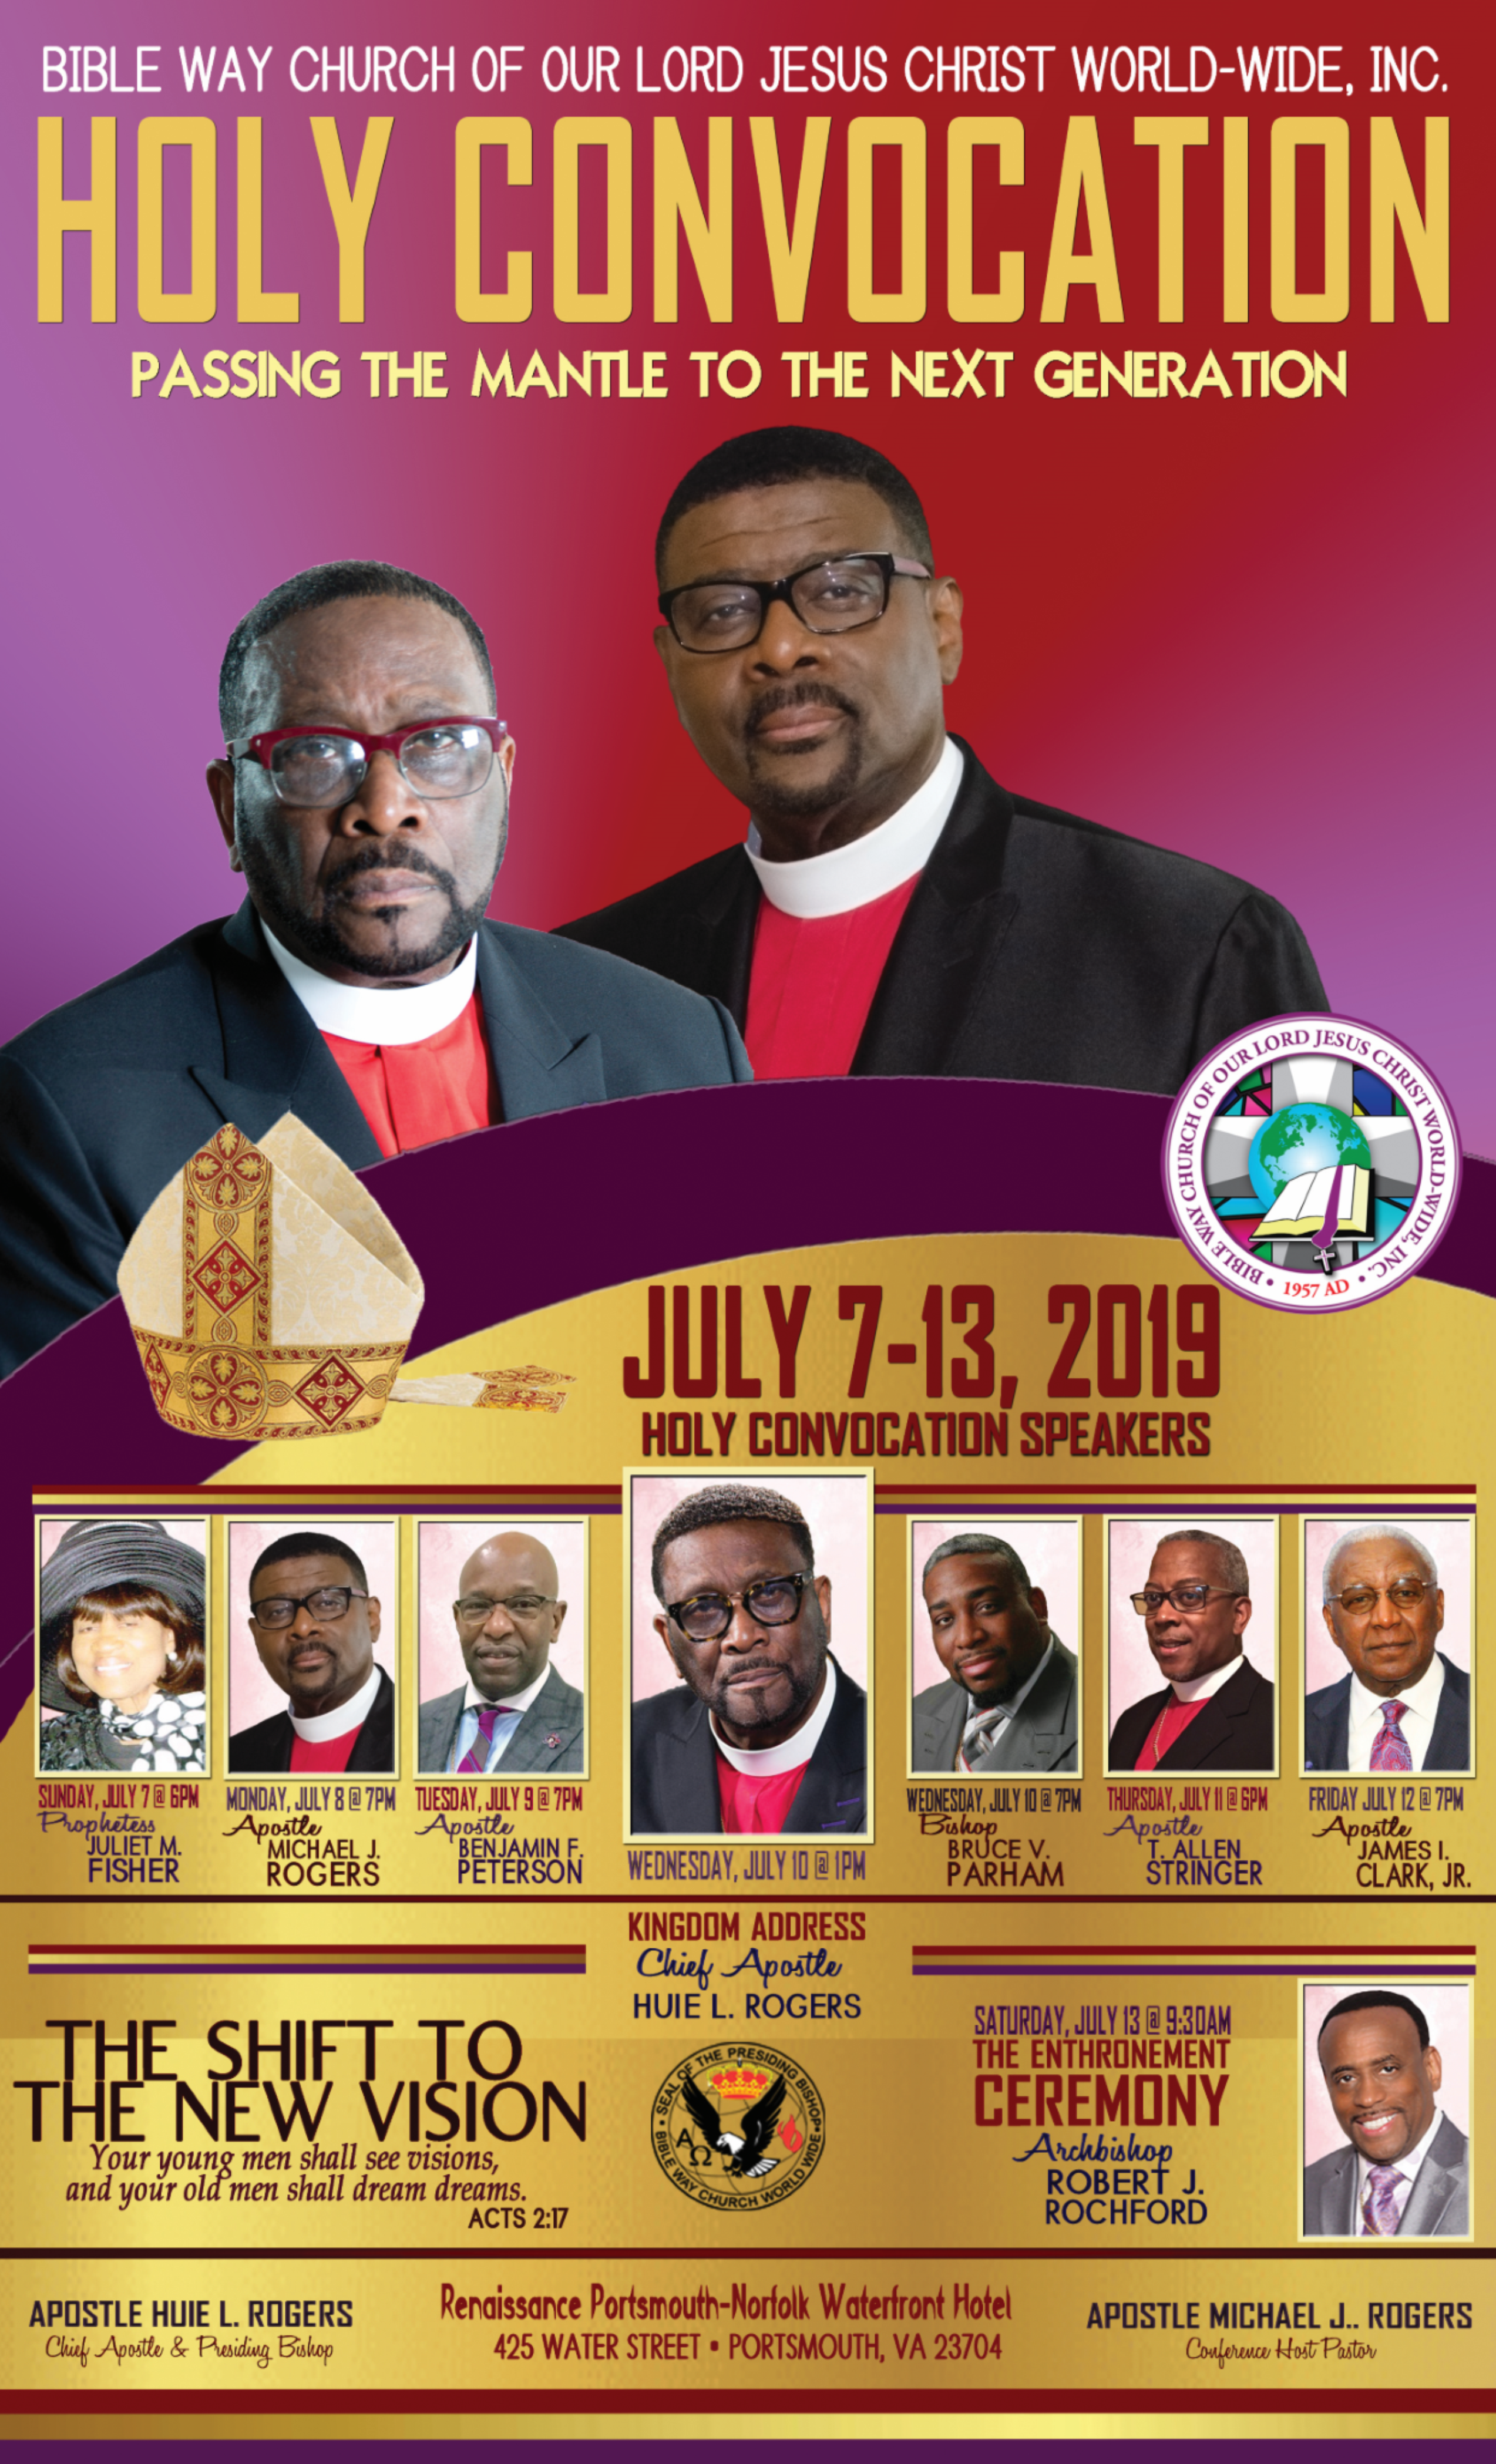 BWCWW 2019 Holy Convocation_Speakers